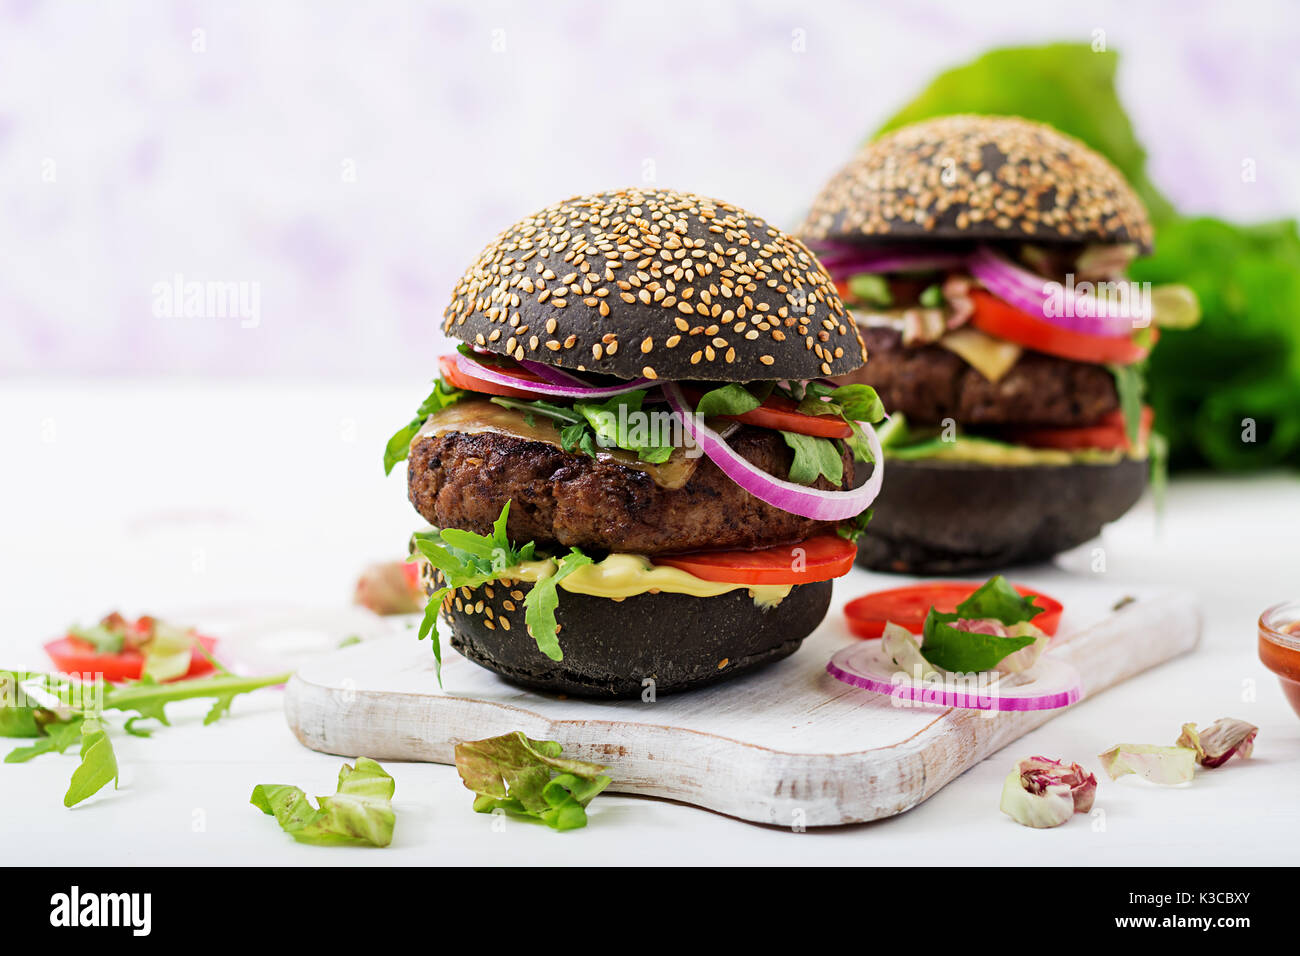 Black big sandwich -  black hamburger with juicy beef burger, cheese, tomato,  and red onion on light background. - Stock Image